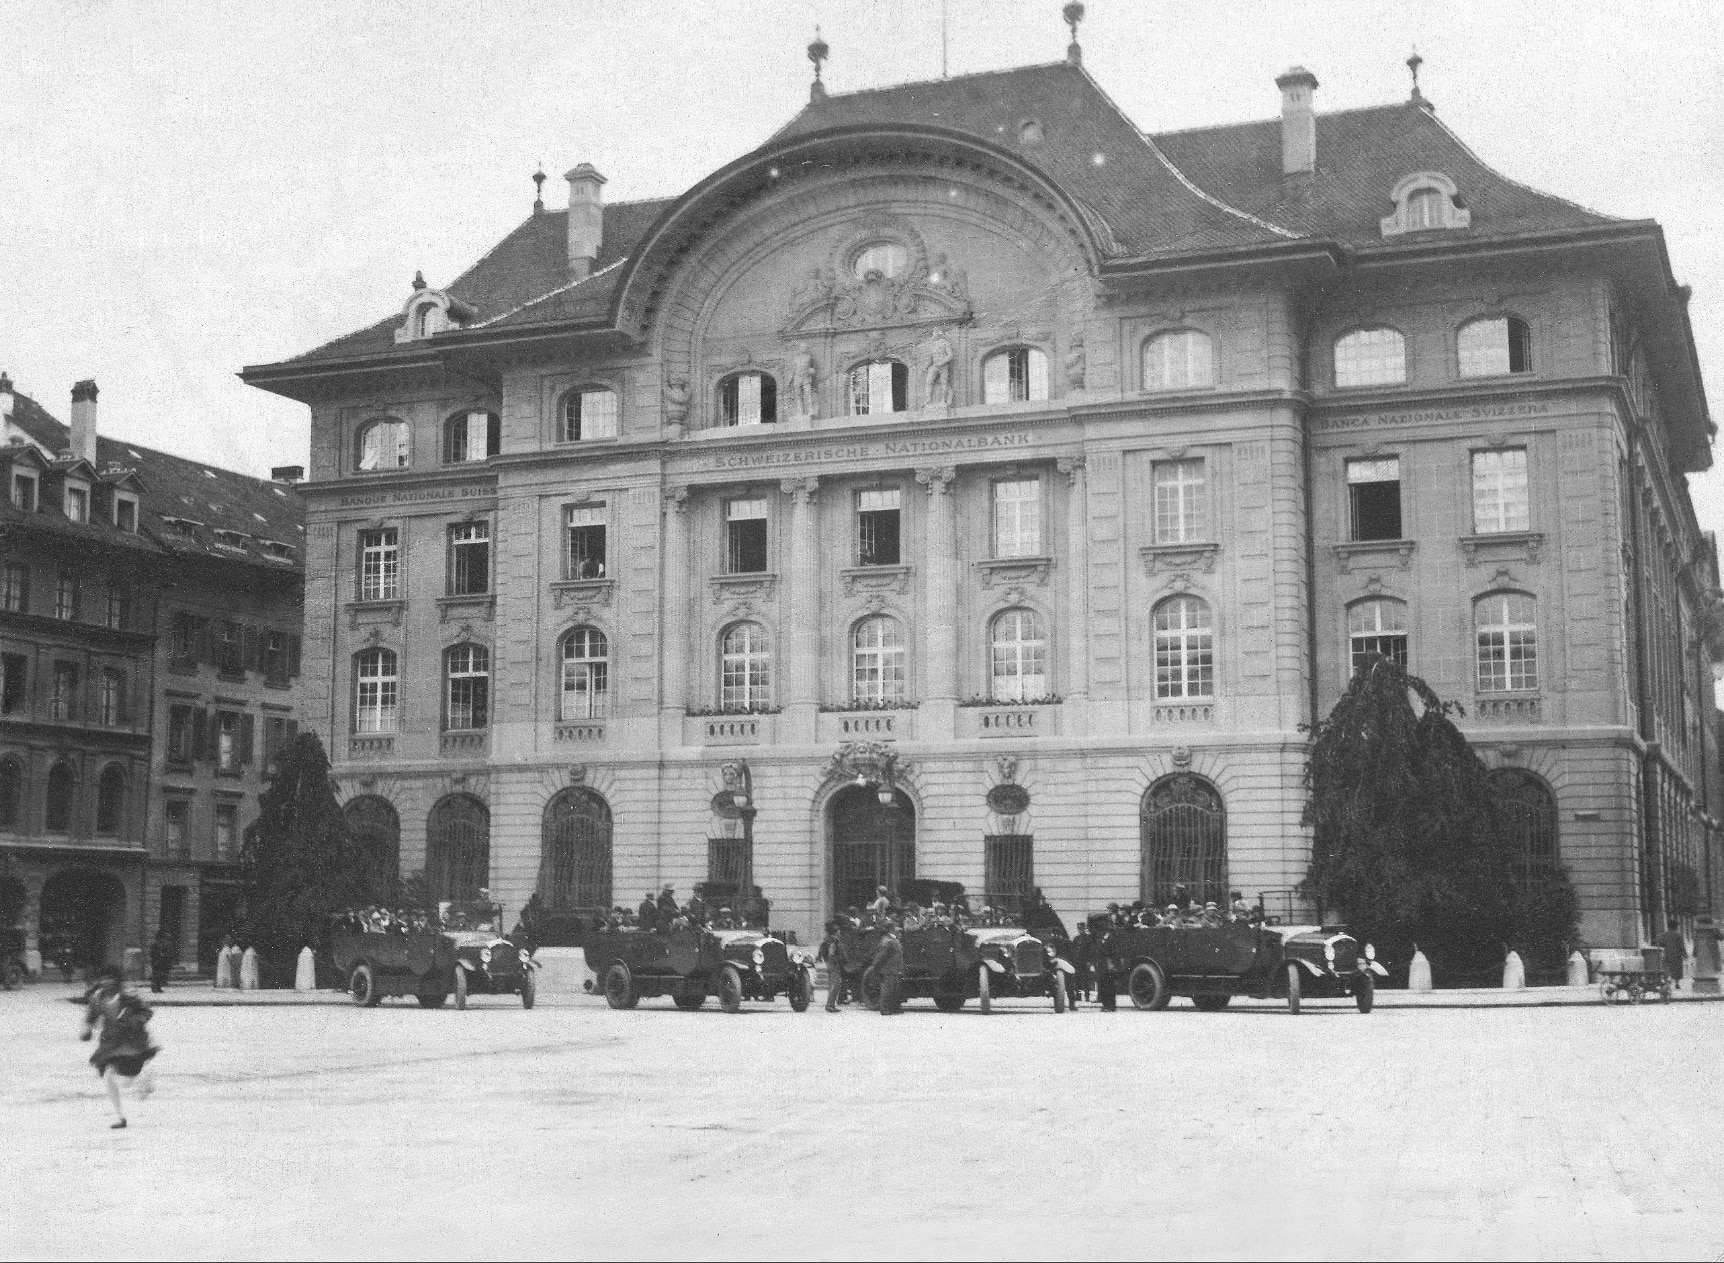 A 1930 view of the main facade of the national bank building designed by Eduard Joos (SNB)